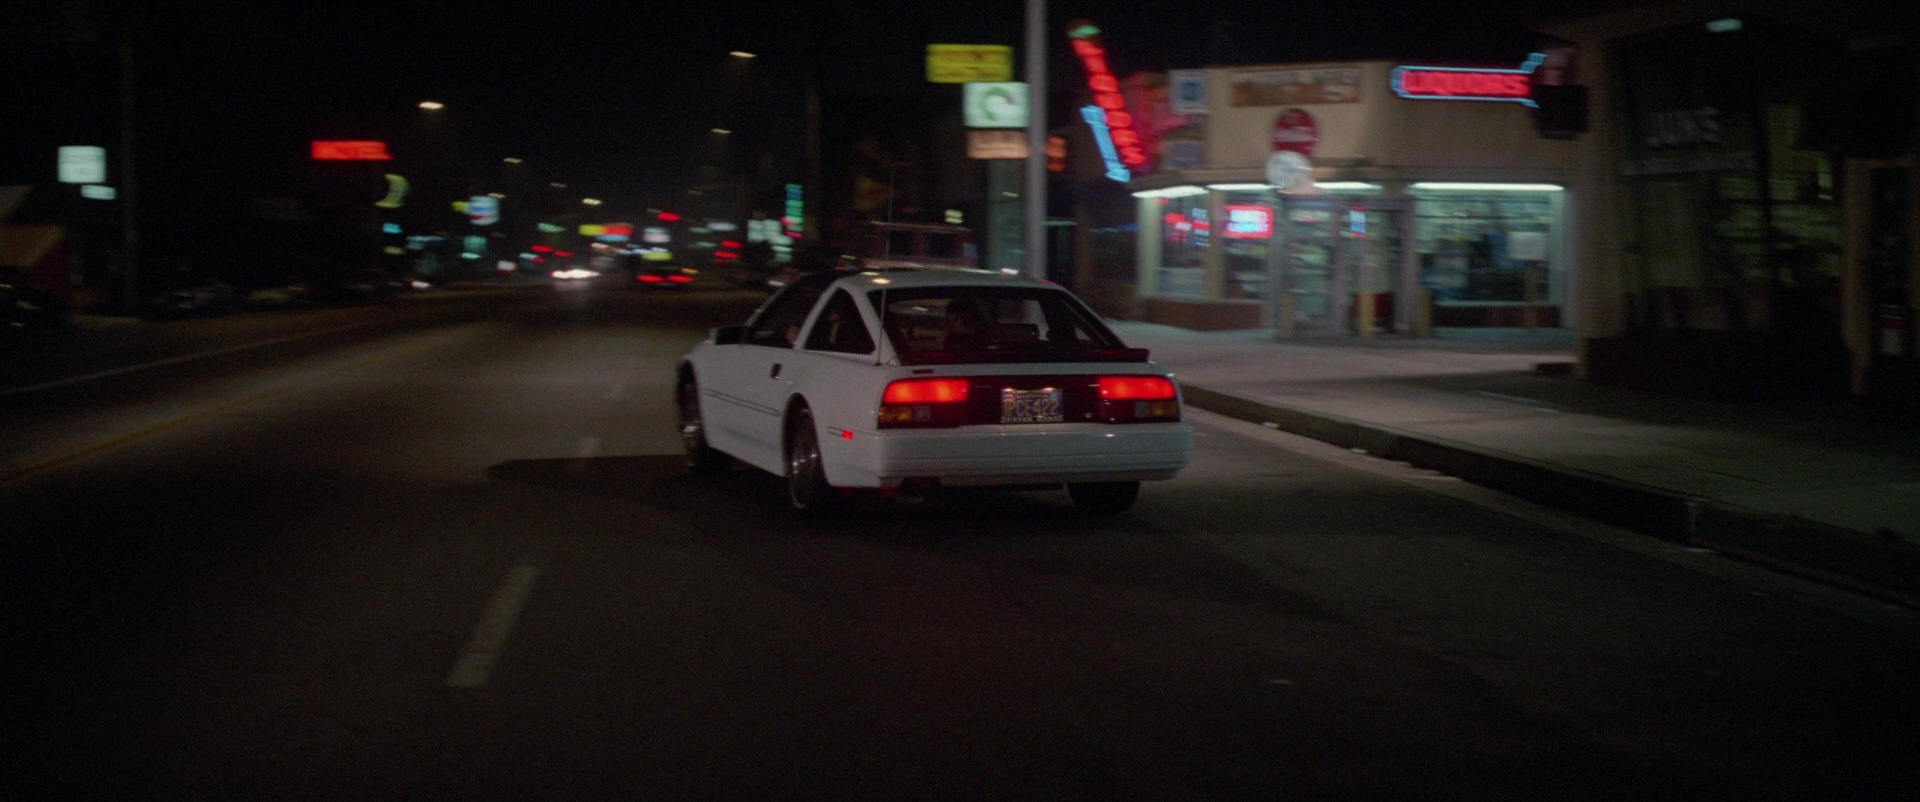 Nissan 300ZX 2+2 [Z31] White Car Used by Bruce Willis in ...